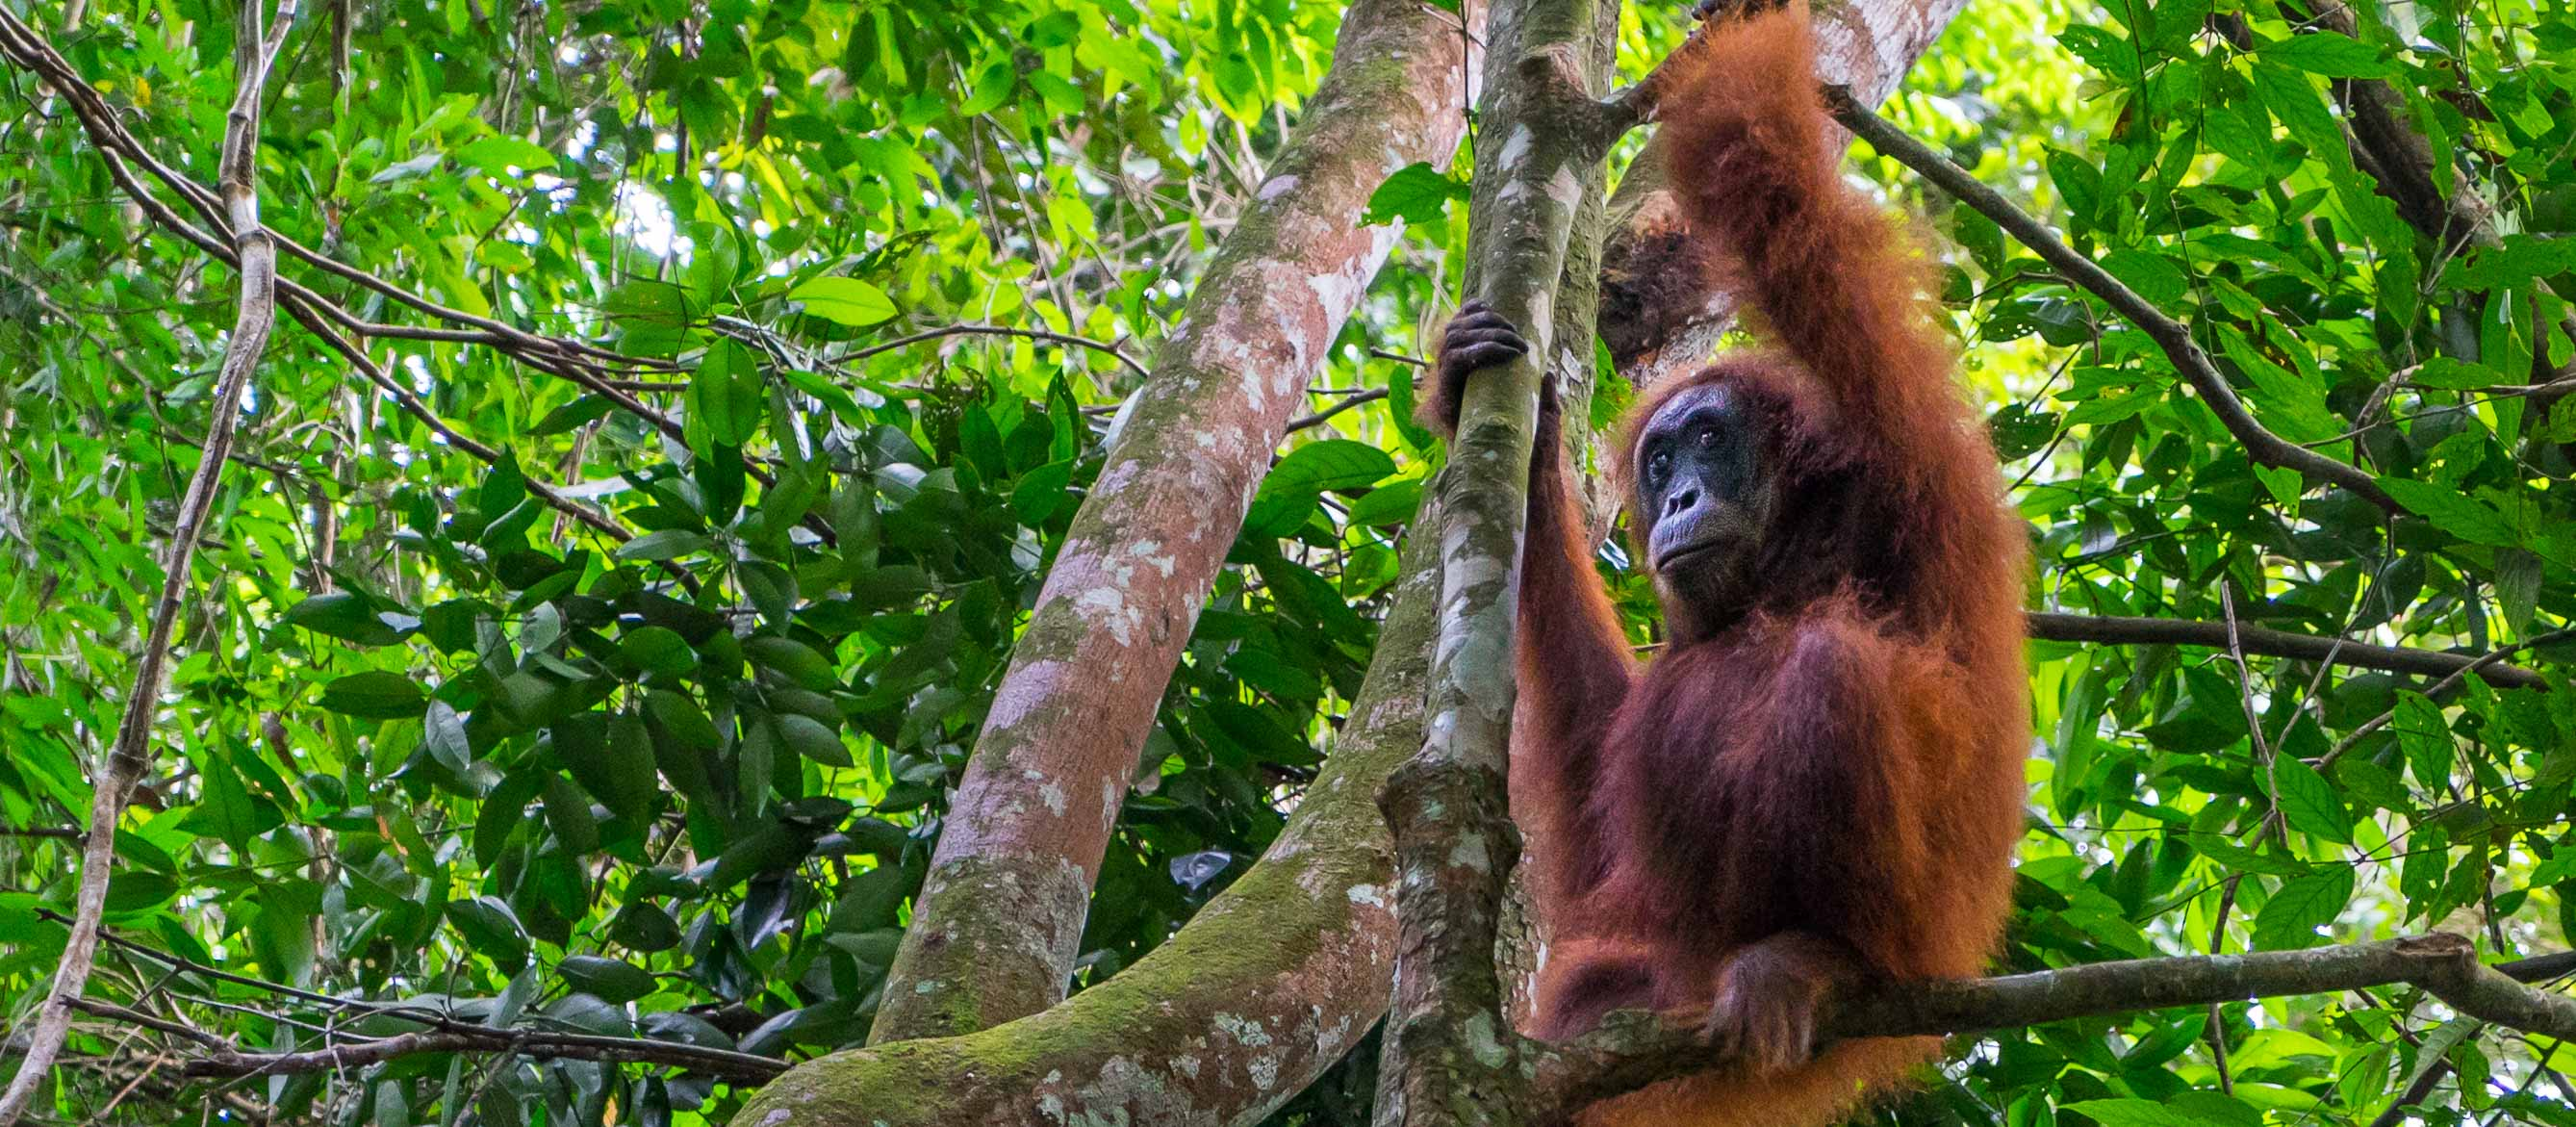 Bukit-Lawang-Orangutans-Featured